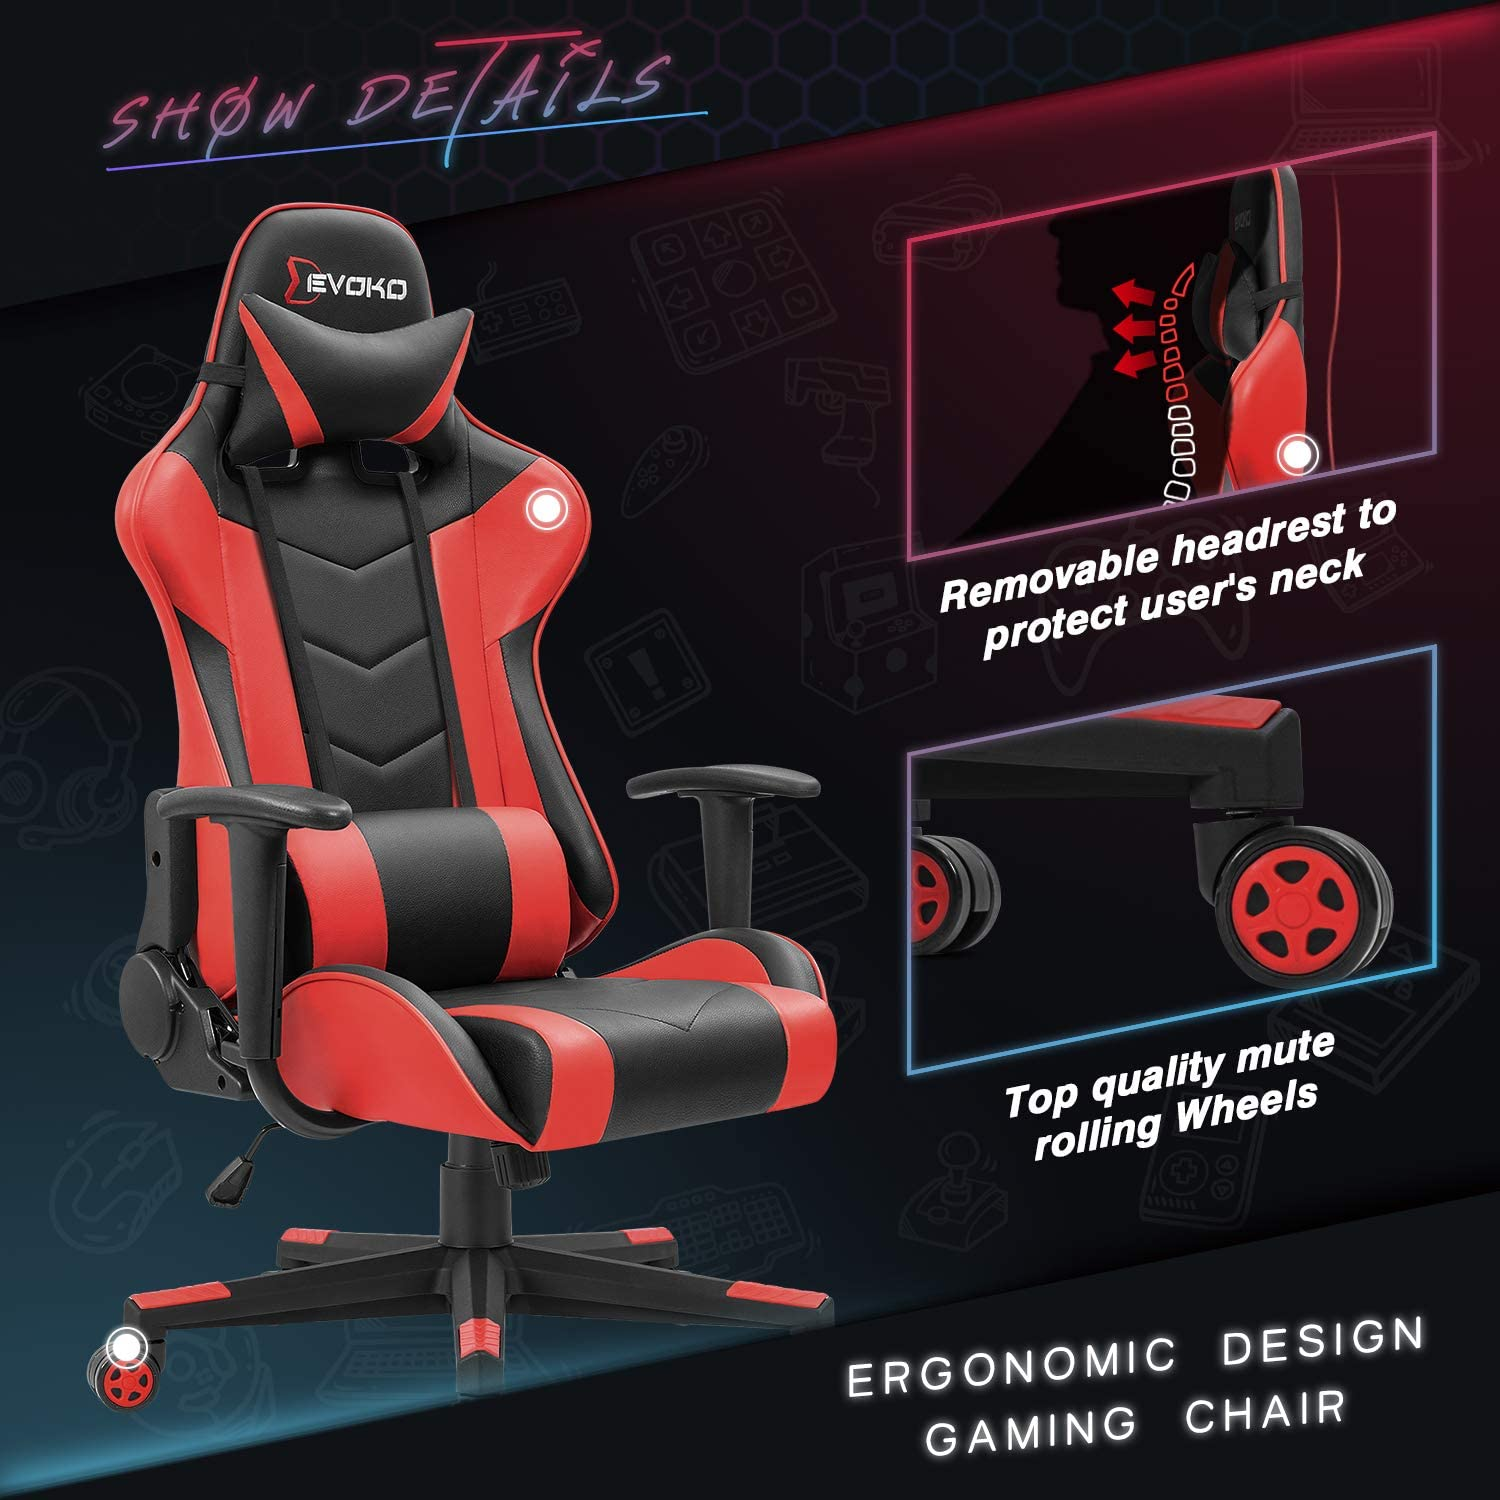 Top Budget Gaming Chair - Reviews,Top Budget Gaming Chair, DigitalUpBeat - Your one step shop for all your  tech gifts and gadgets